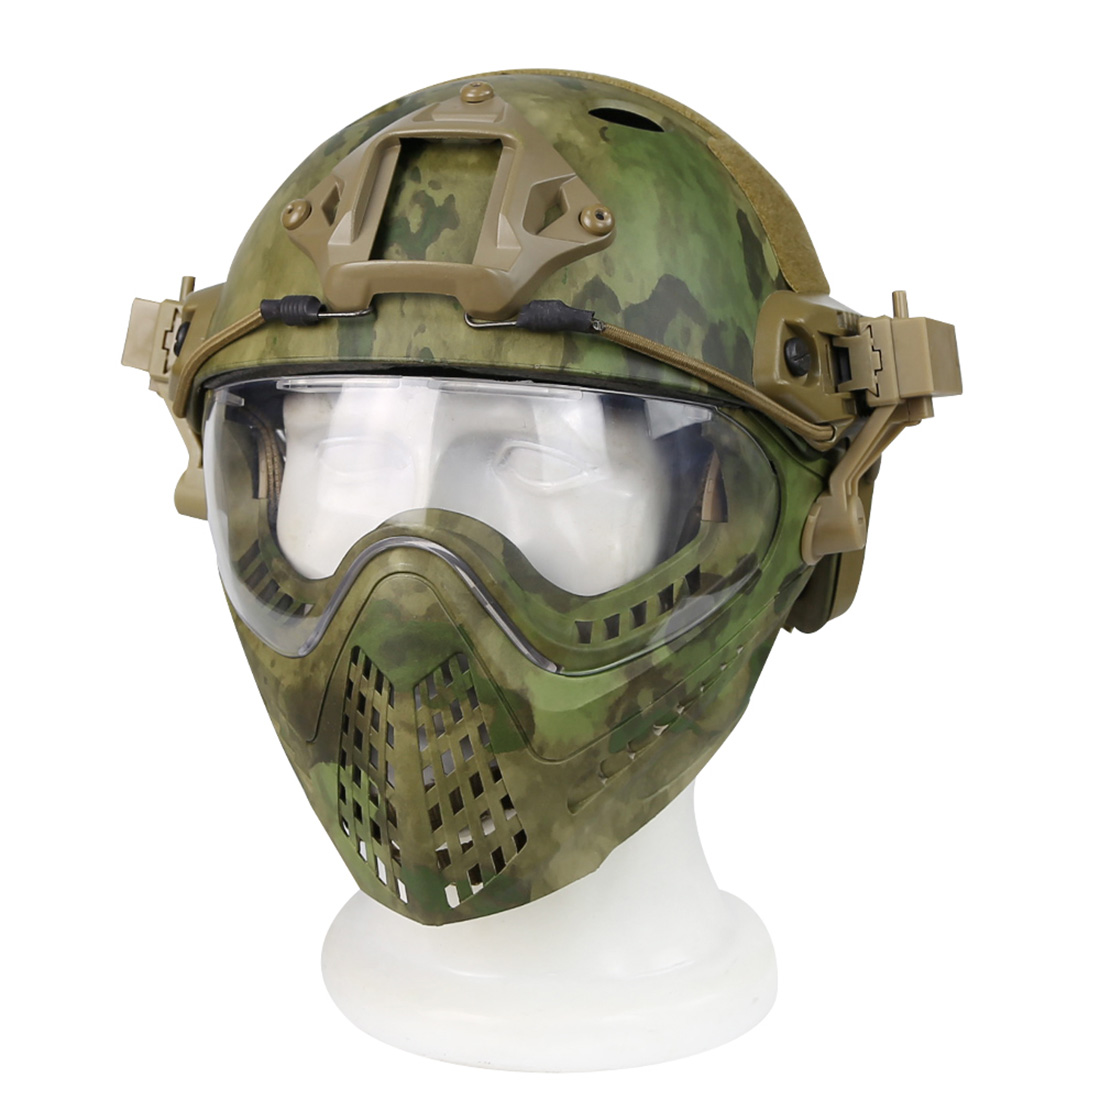 NFSTRIKE Navigator Tactics Camouflage Protecting Helmet for Nerf  for Airsoft Military Tactical Accessories Outdoor - M SizeNFSTRIKE Navigator Tactics Camouflage Protecting Helmet for Nerf  for Airsoft Military Tactical Accessories Outdoor - M Size